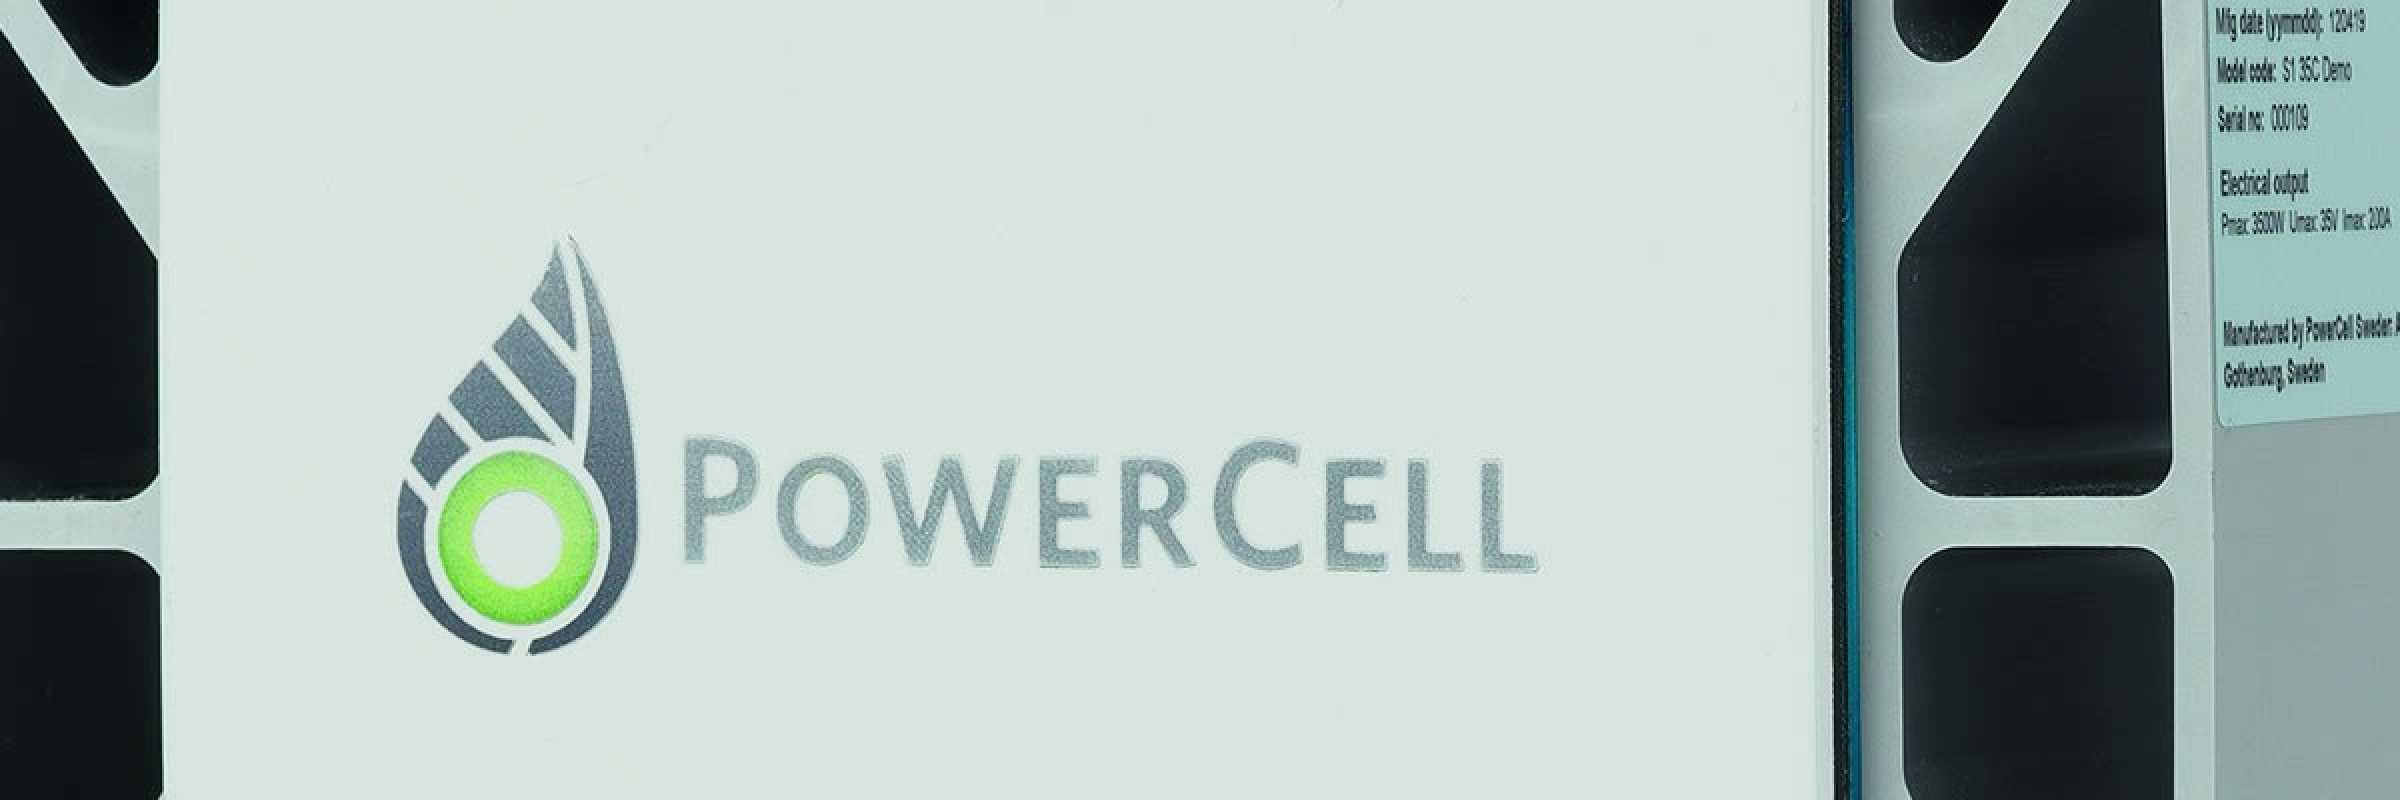 Siemens and PowerCell to collaborate in fuel cell systems for ships